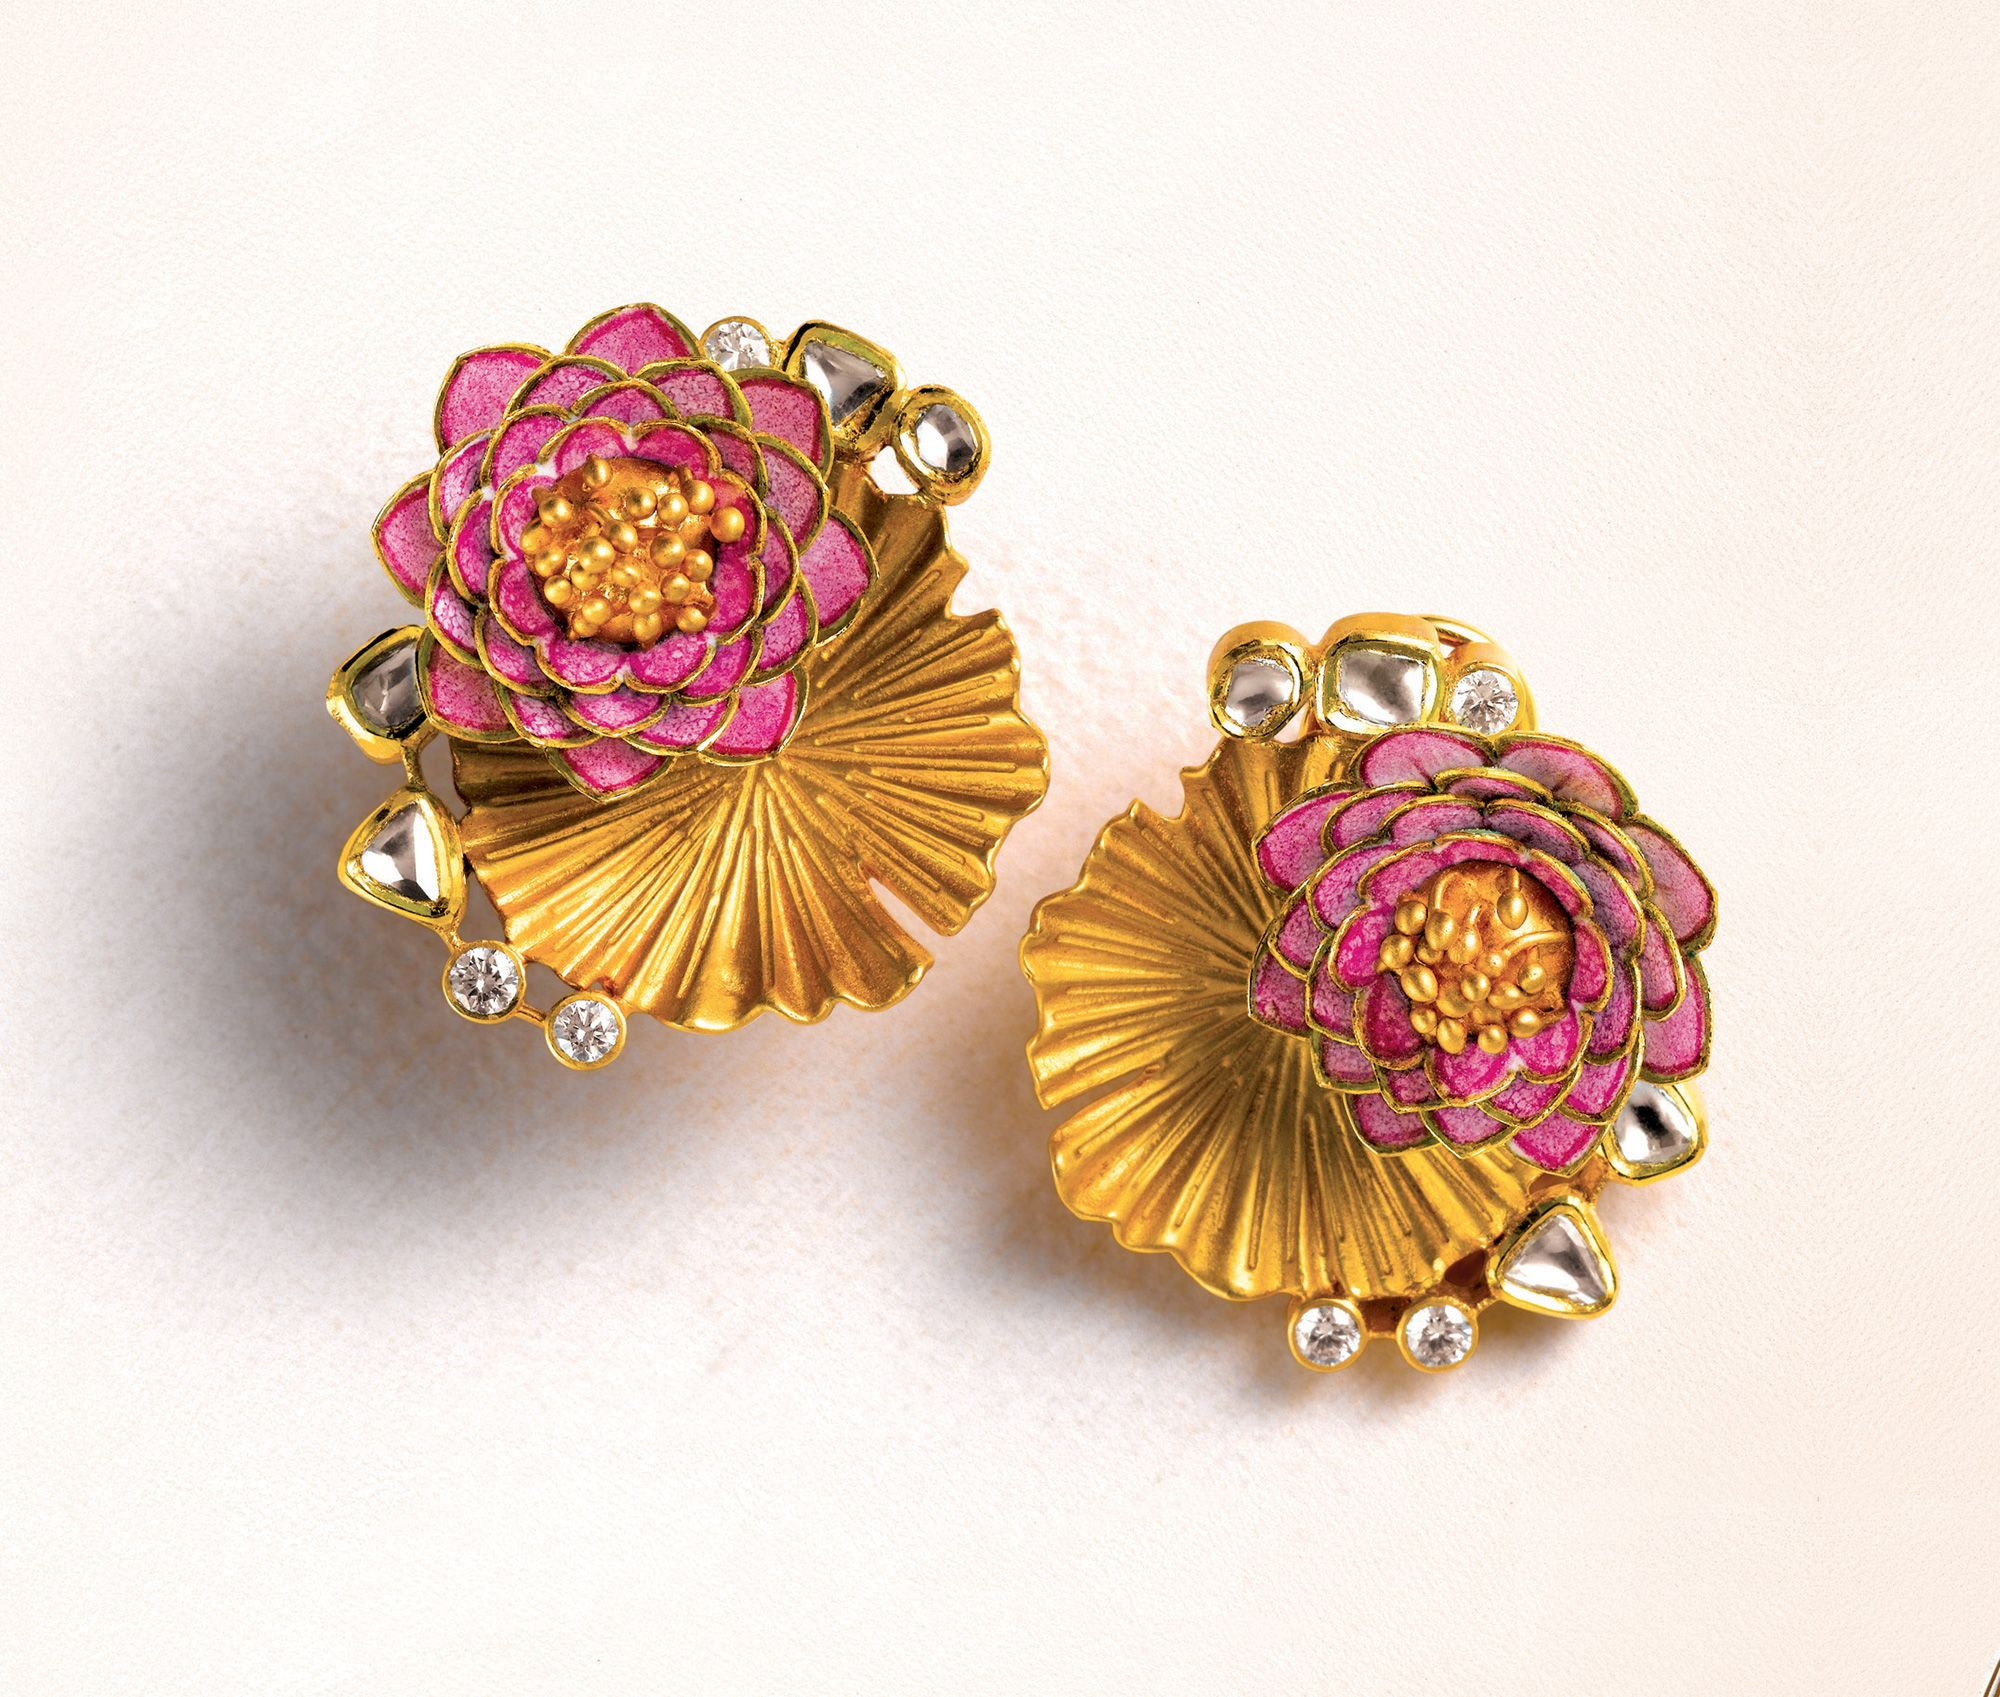 The latest resplendent jewels from Zoya one of India s finest